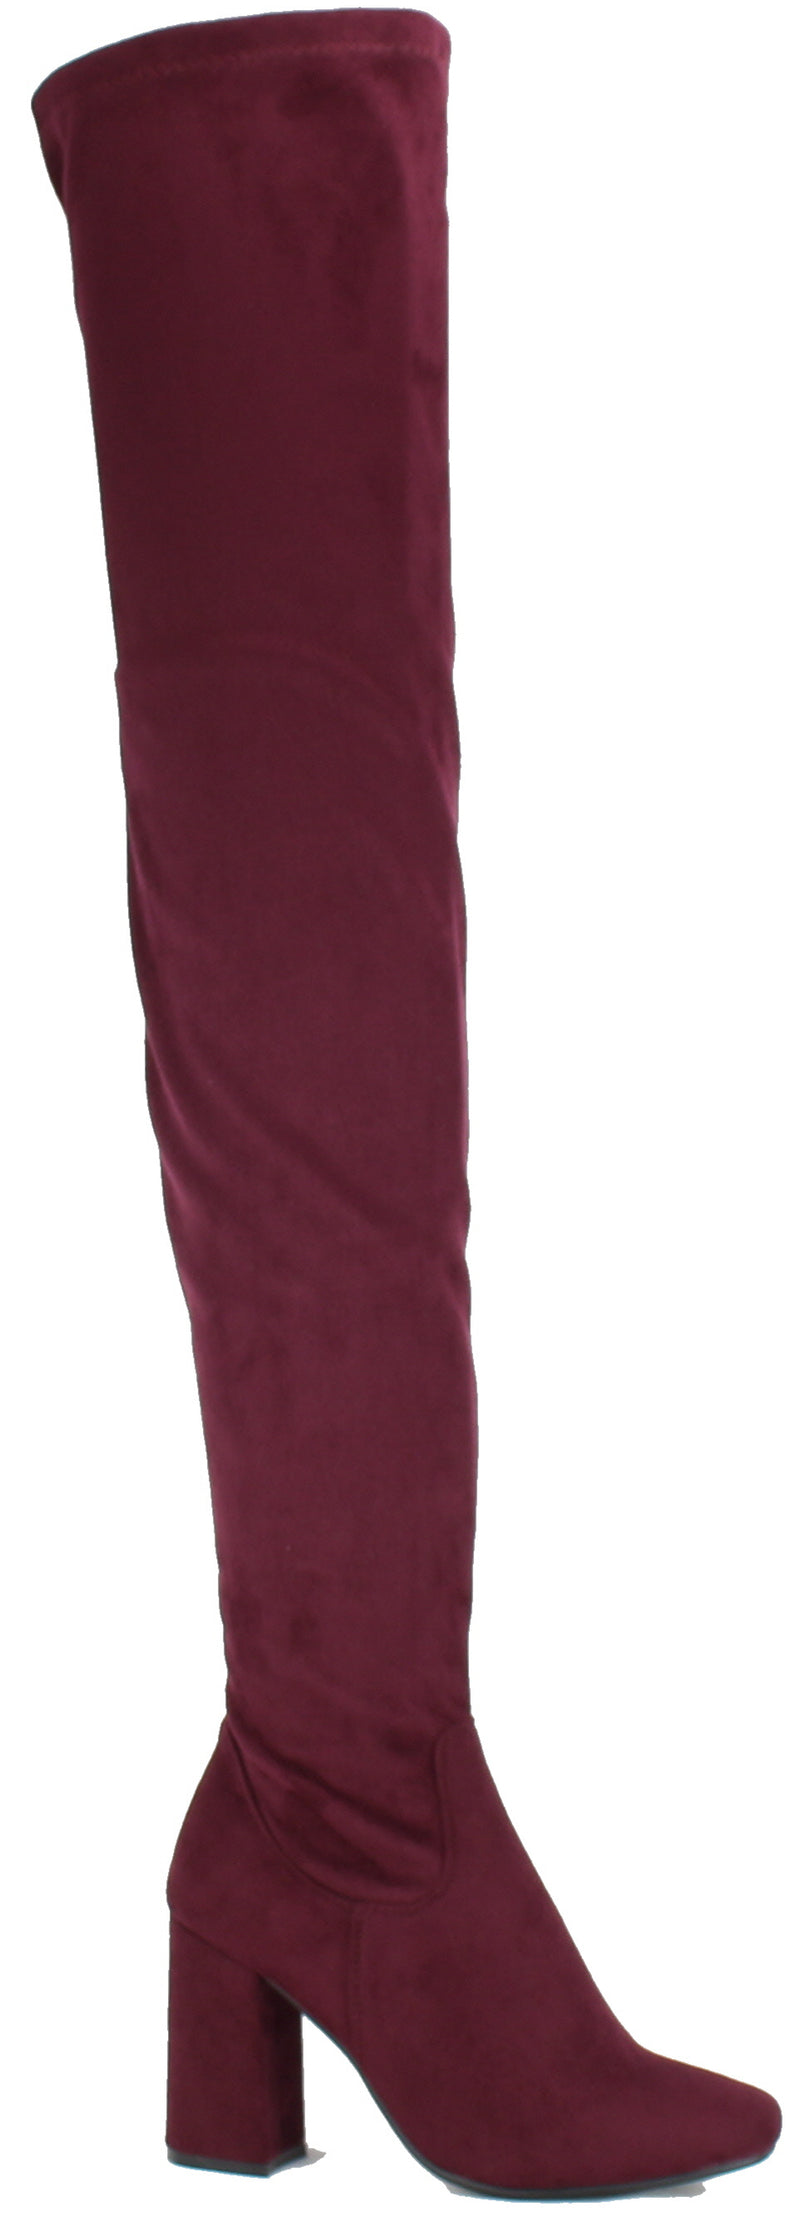 Nature Breeze Elantra-01TH Burgundy Suede Thigh High Chunky Heel Boot